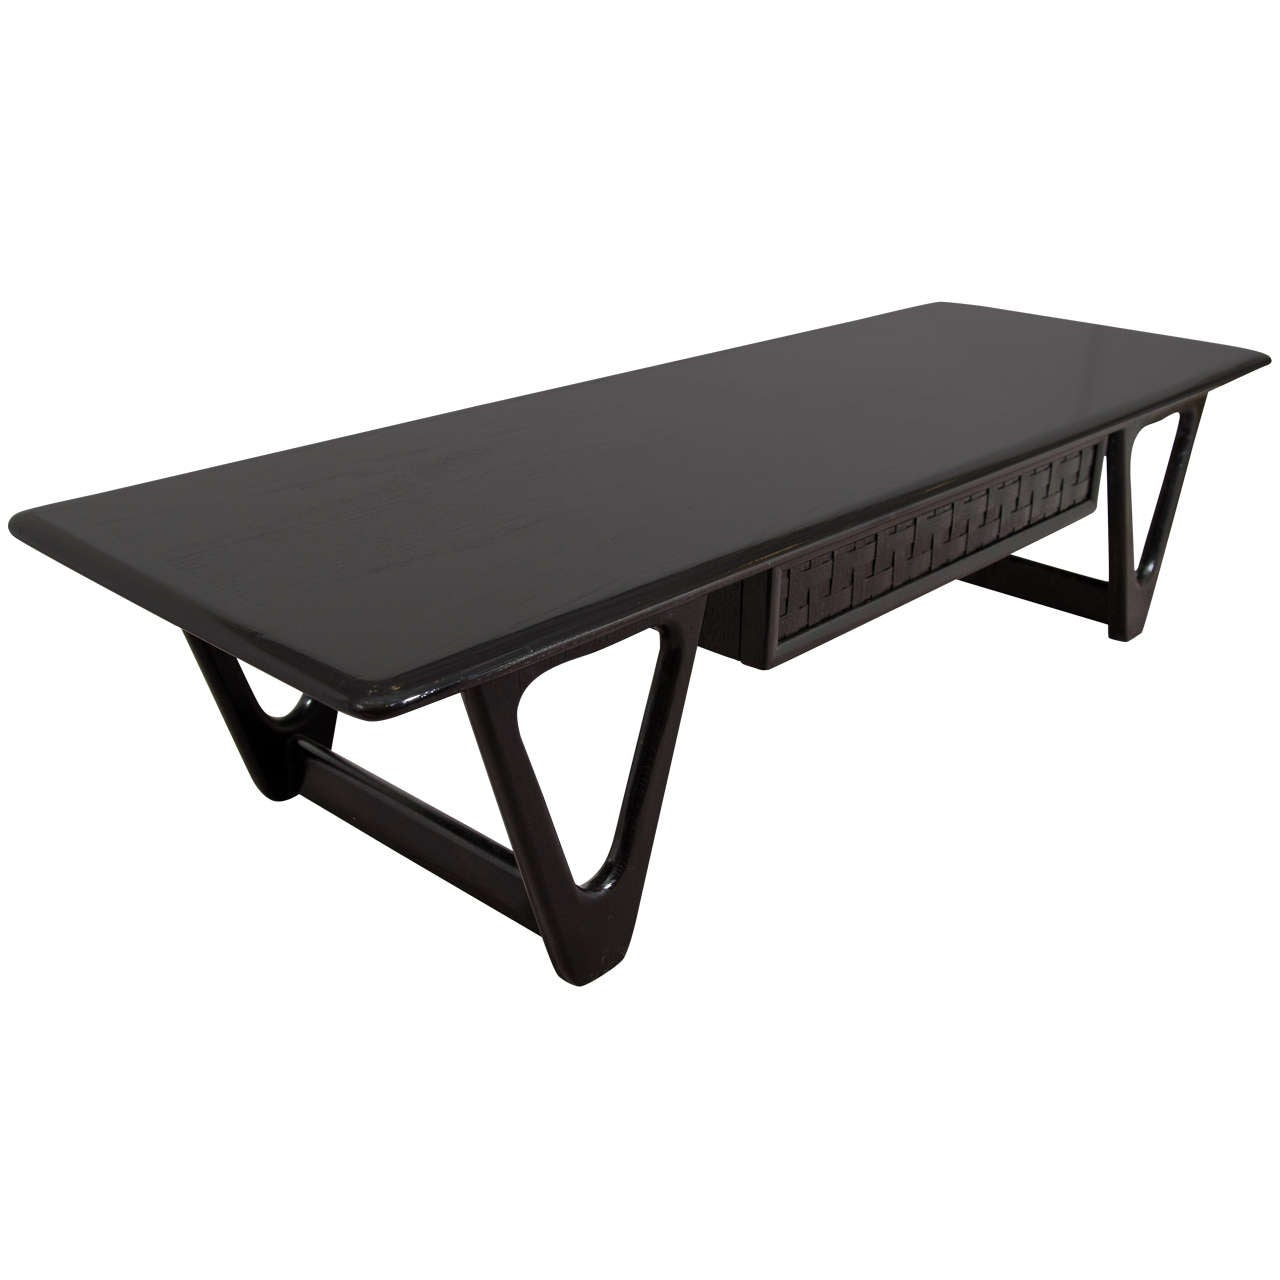 Mid Century Lane Copenhagen Drop Leaf Coffee Table: A Mid Century Black Lacquered Lane Coffee Or Cocktail